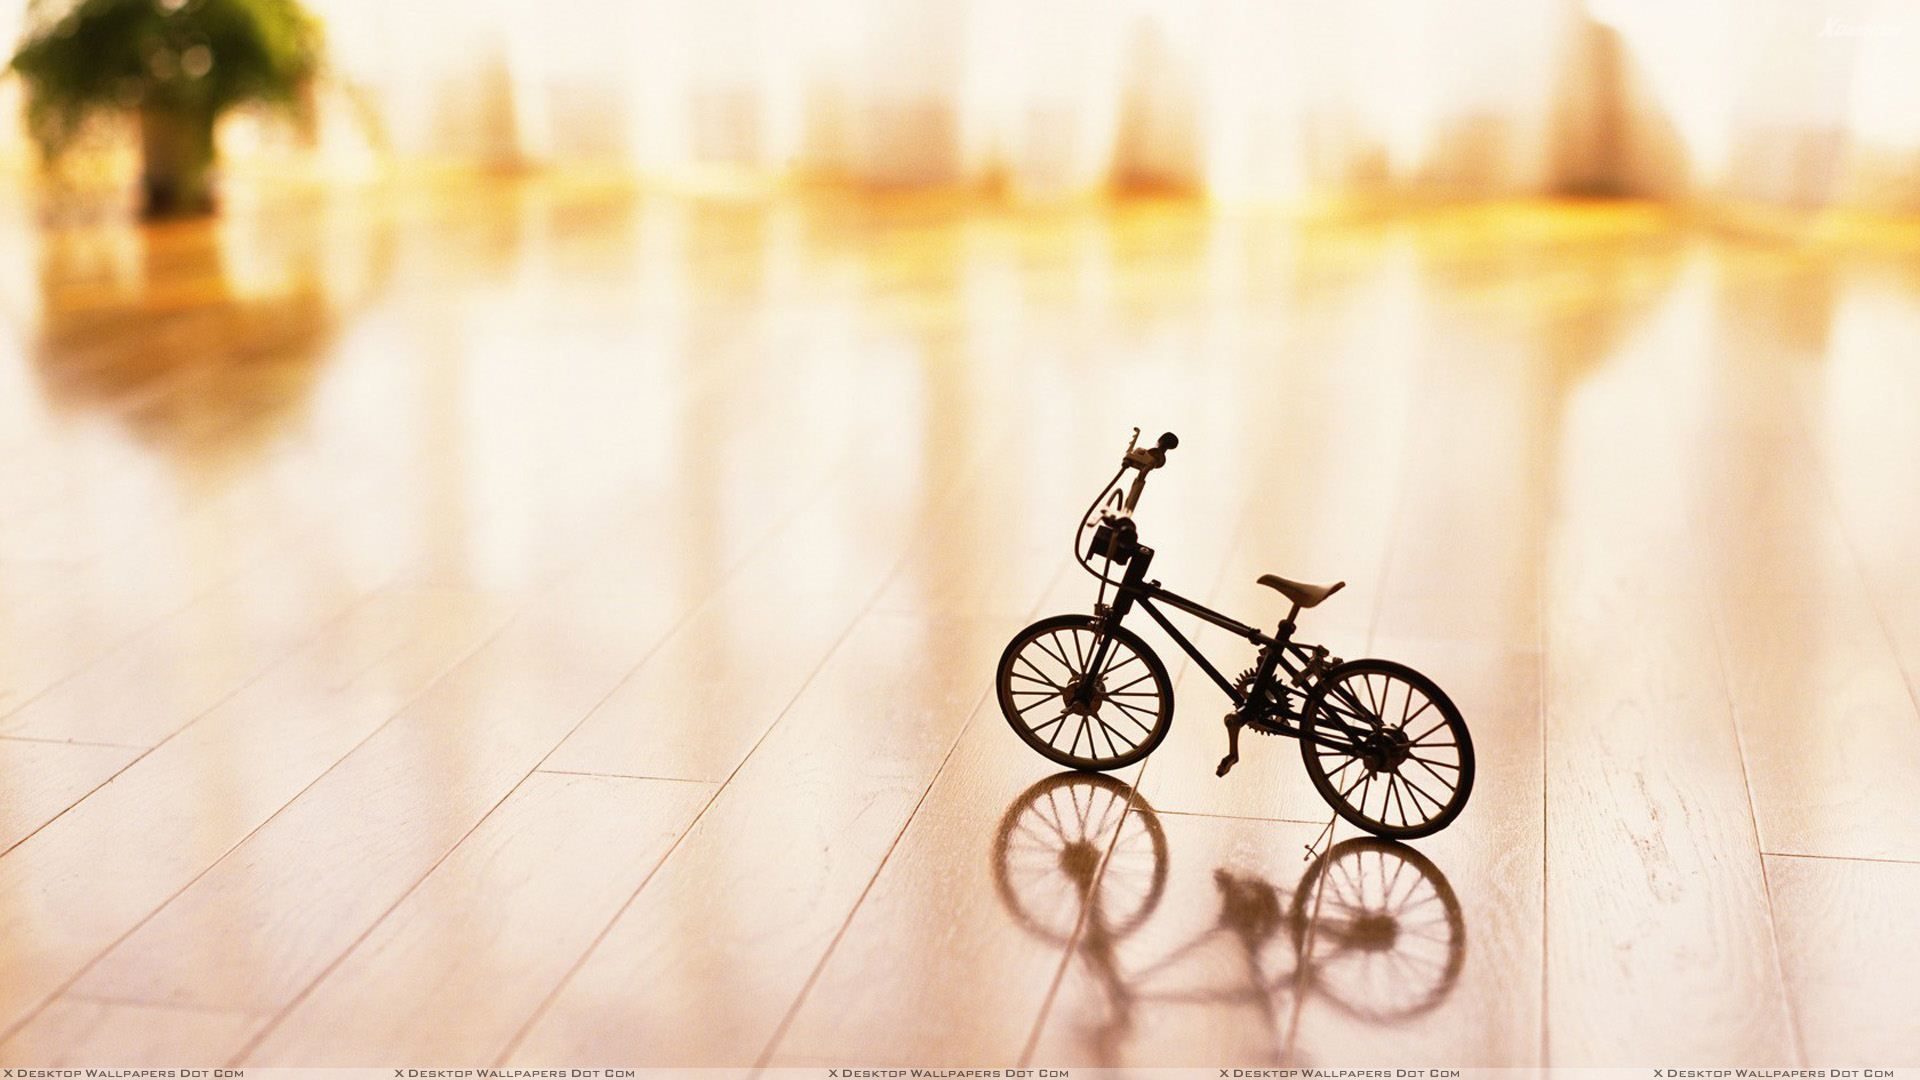 small cycle on table